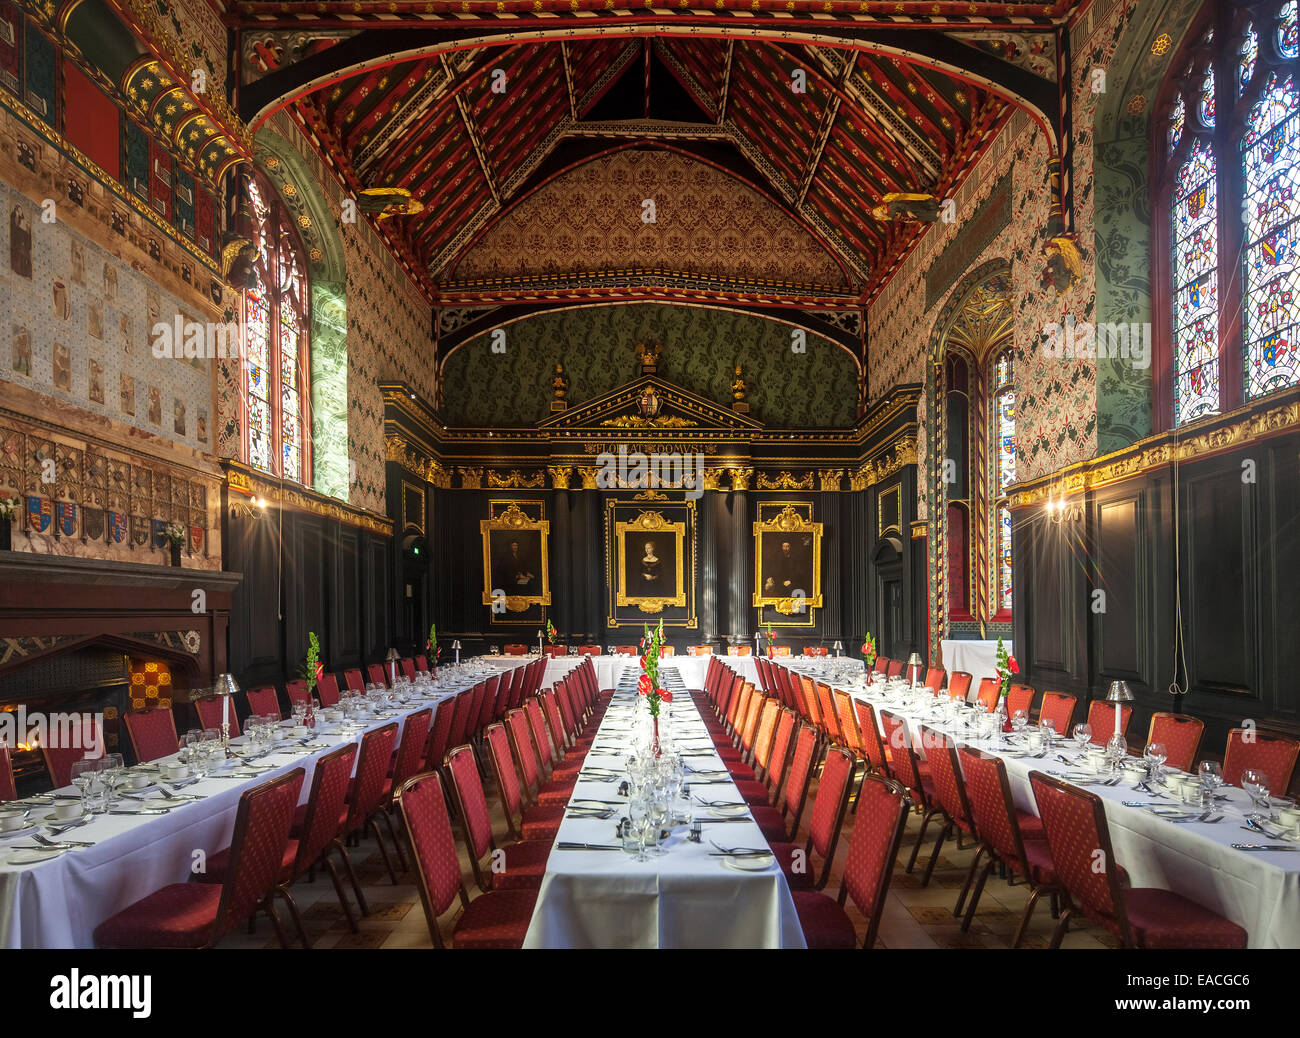 Cambridge Queens' College Old Hall dating from 1448. Tables set up for formal dining. 15th century building - Stock Image